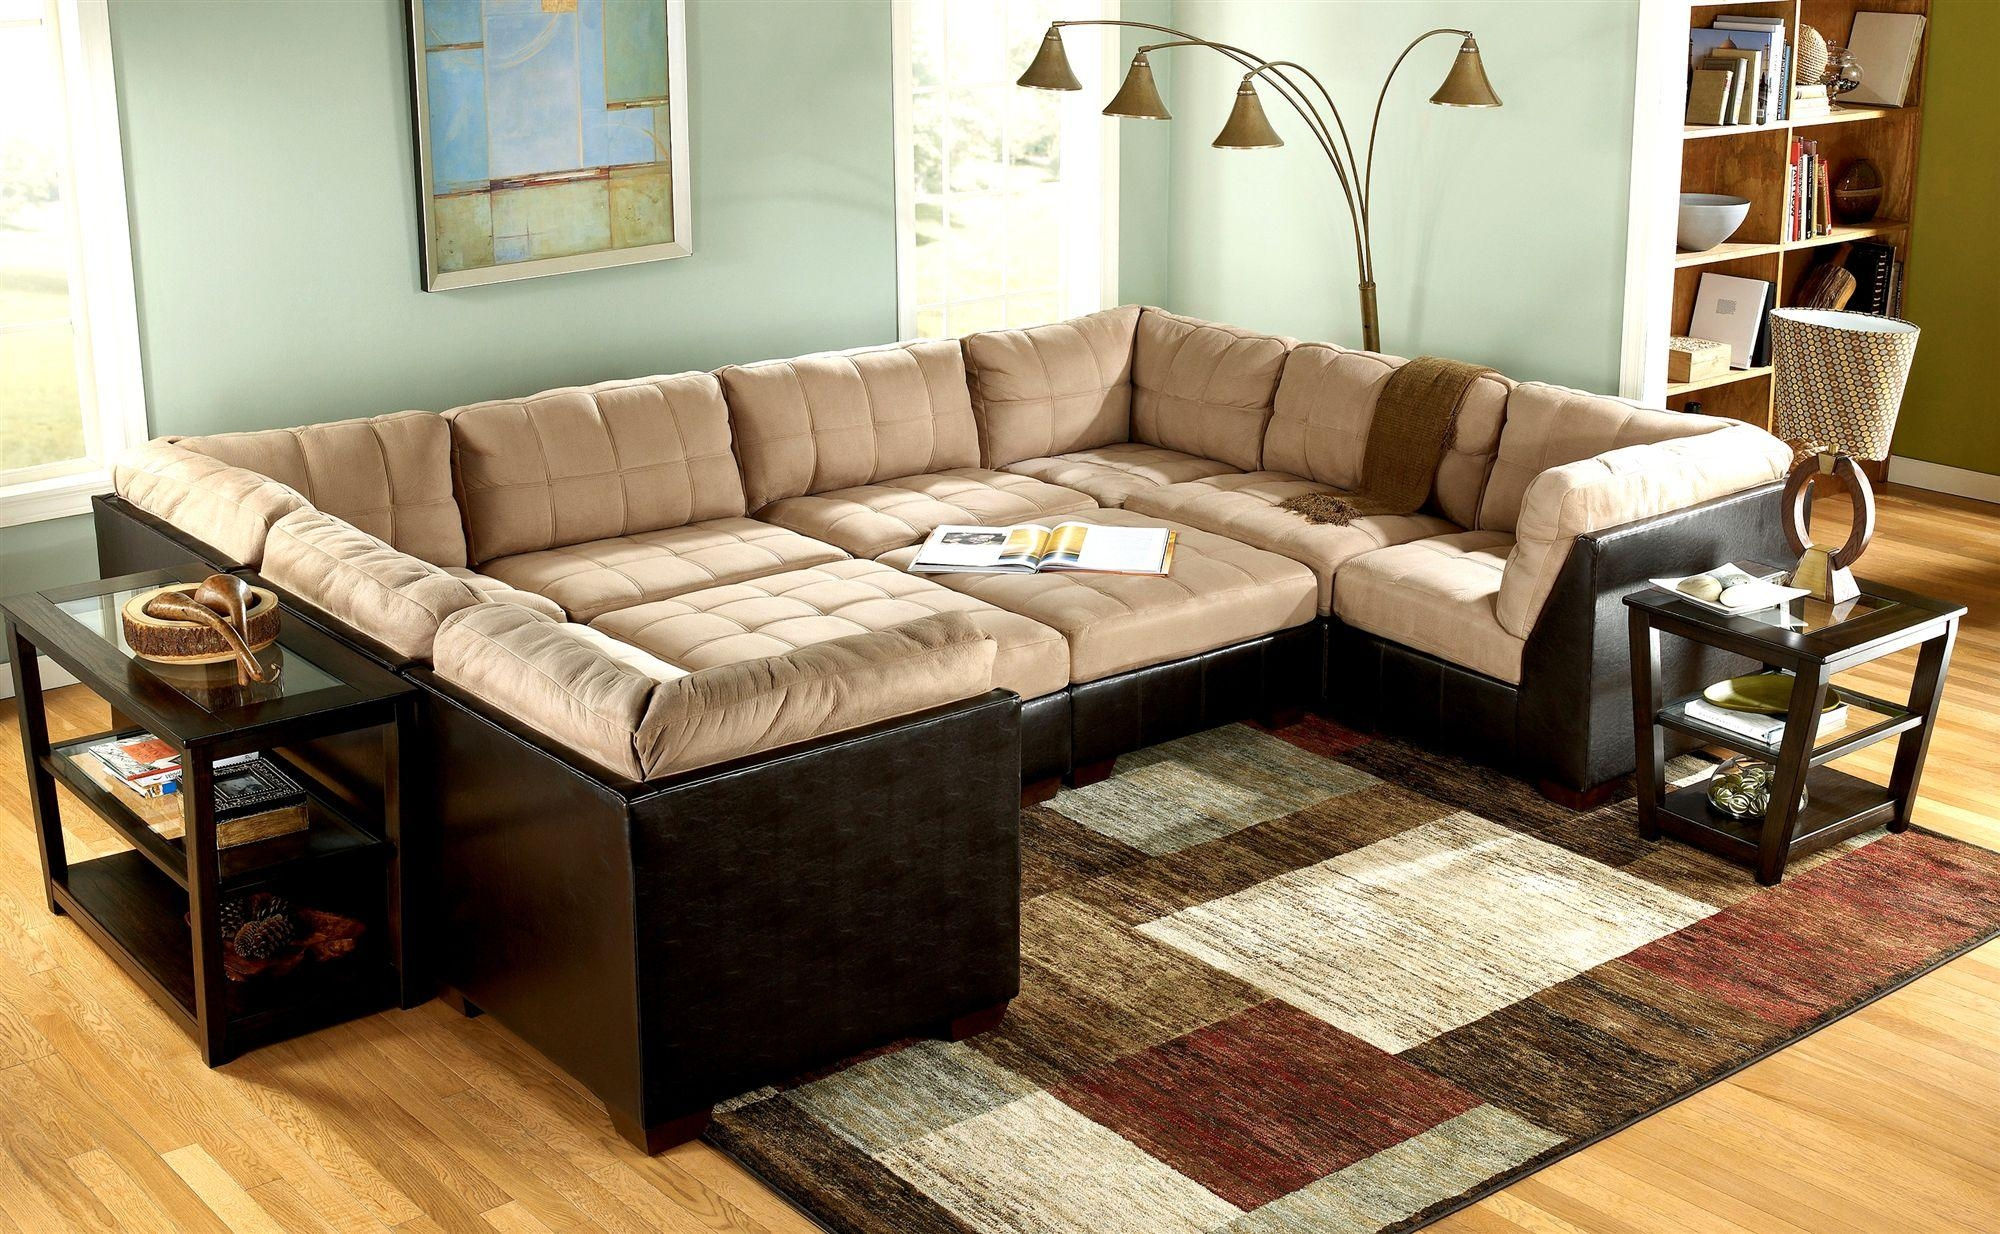 Amazing Pit Group Sofa 86 On Sofas And Couches Ideas With Pit With Pit Sofas (Image 1 of 20)